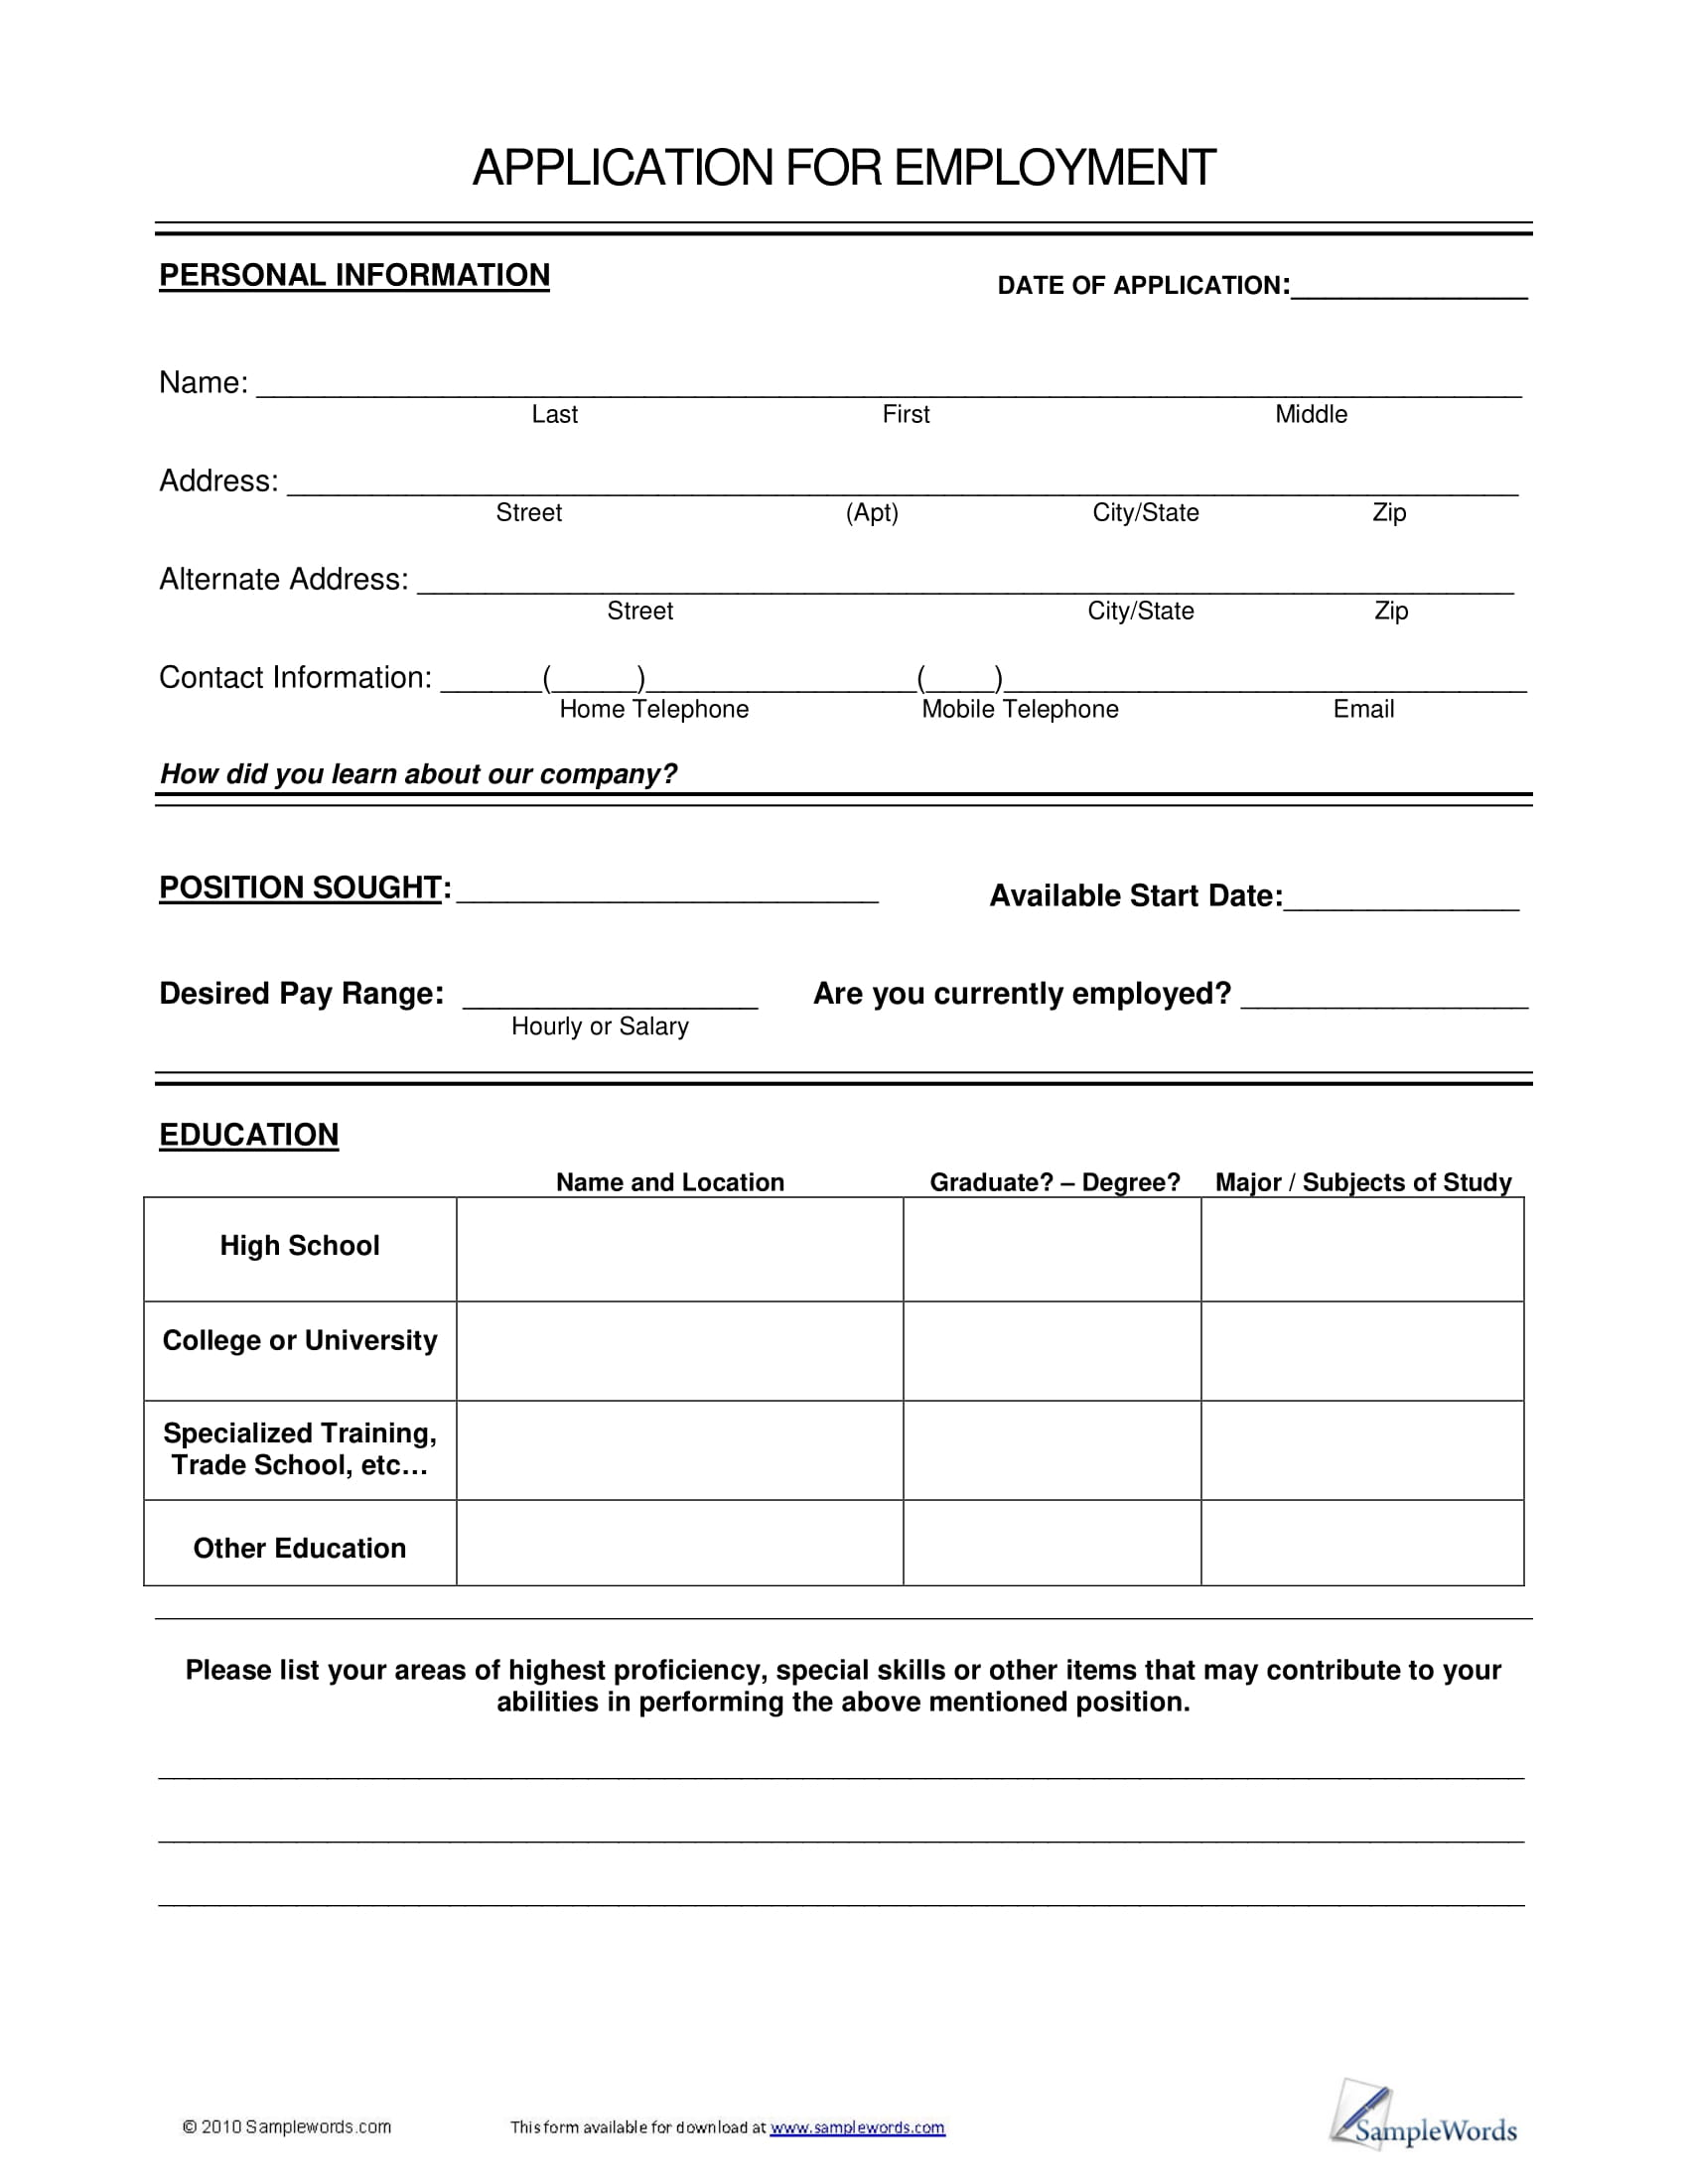 application form example for job